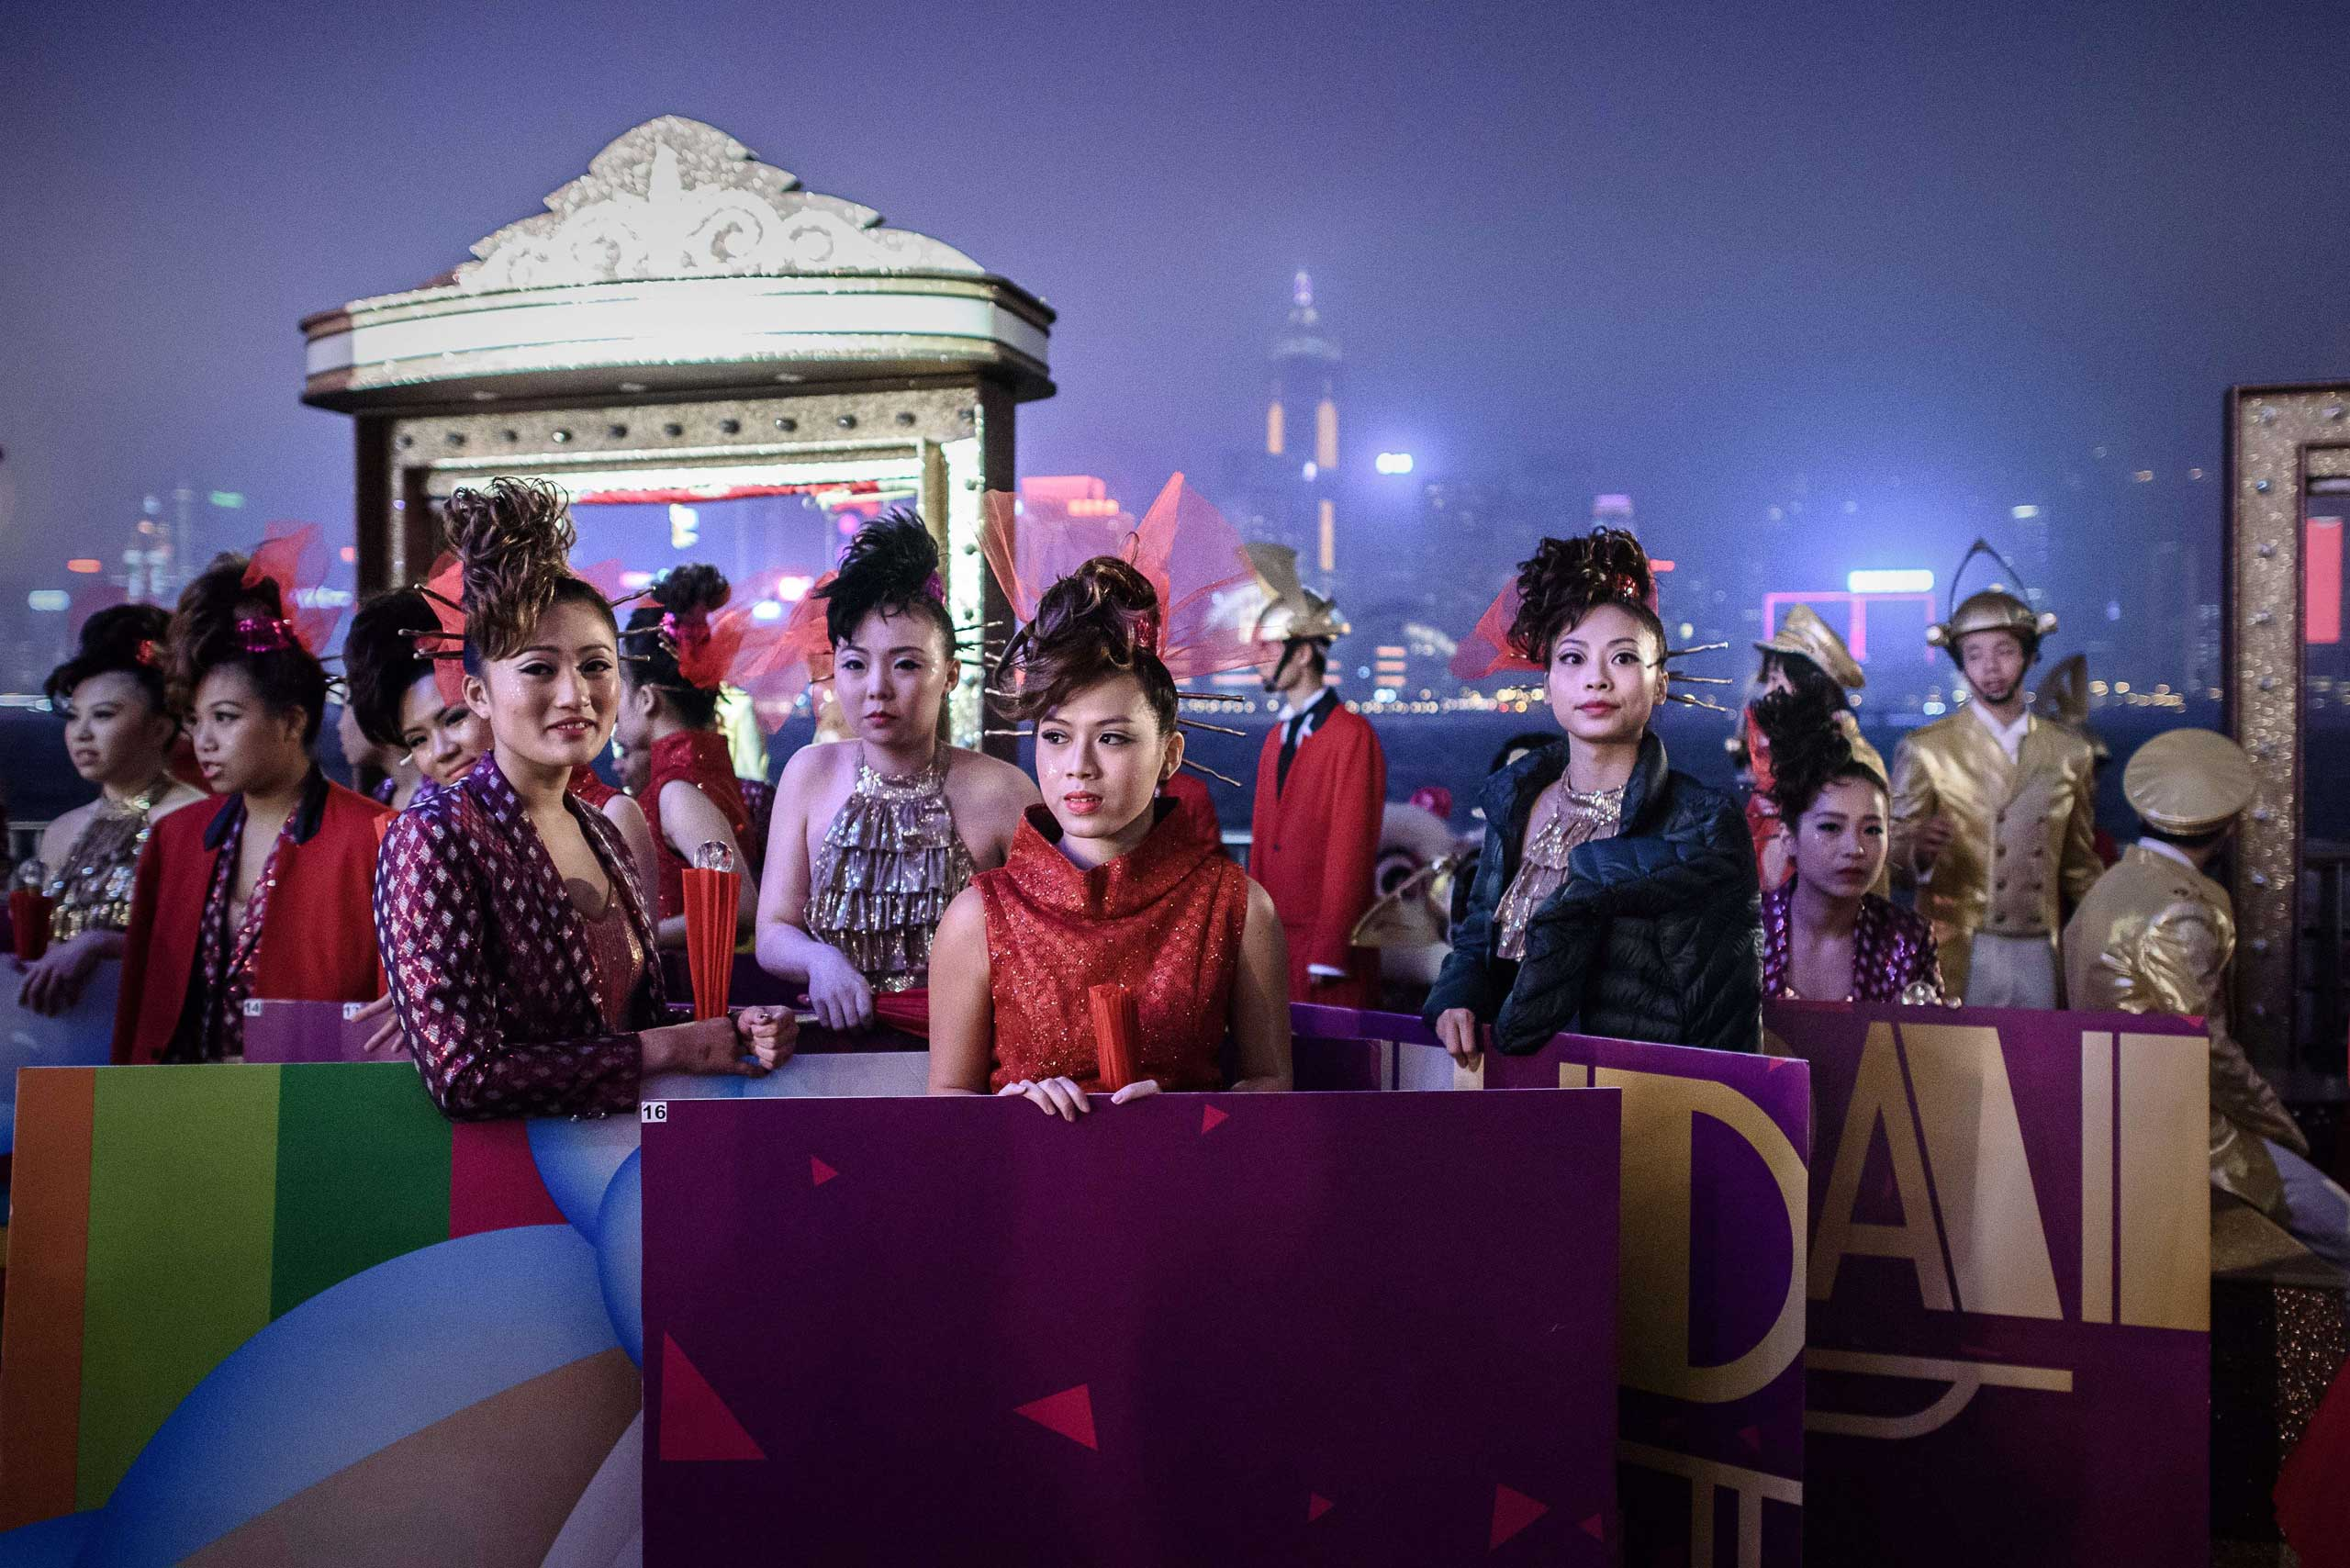 Performers wait for the start of the celebrations of the Lunar New Year in Hong Kong on Feb. 19, 2015.